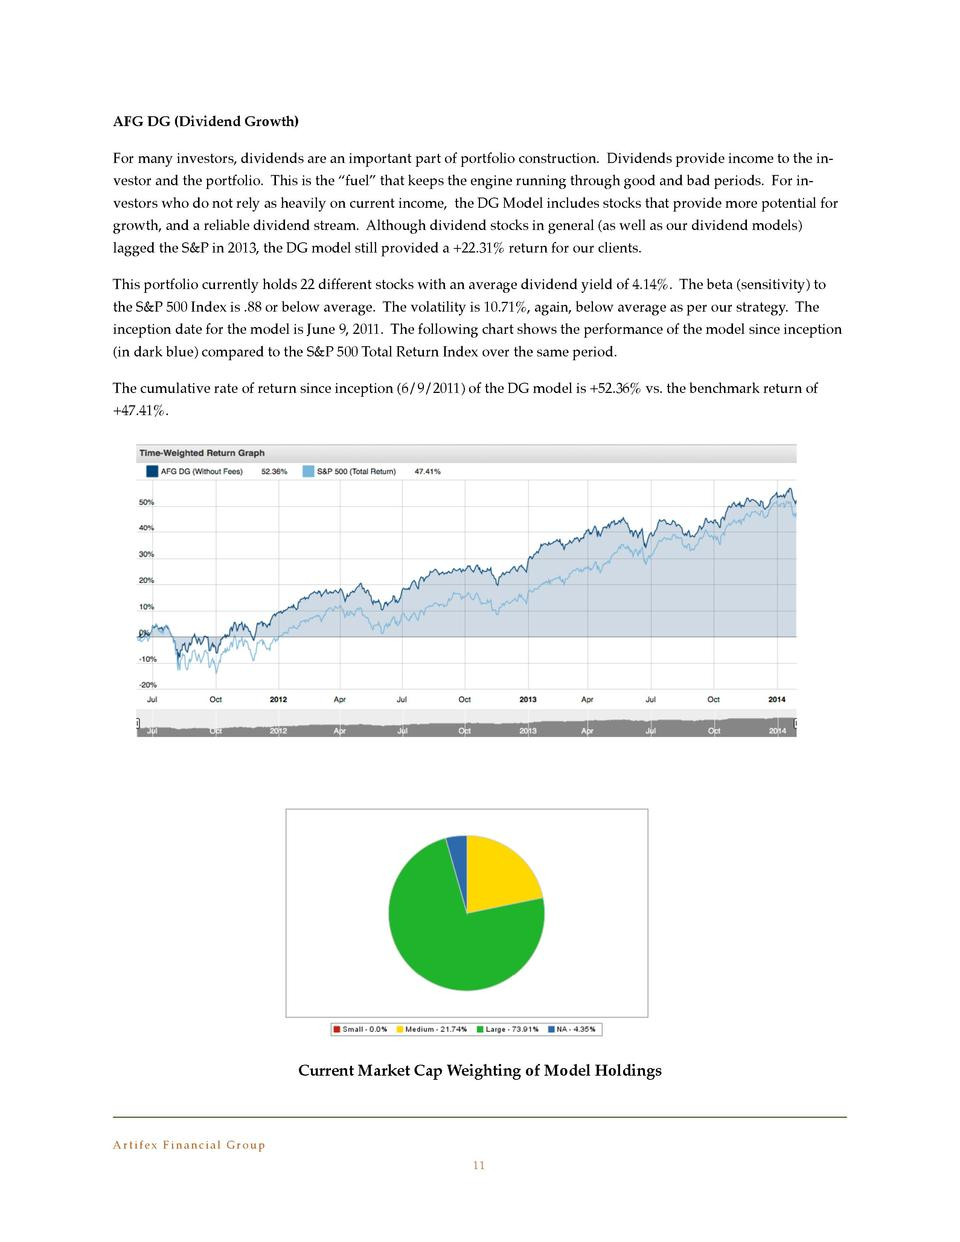 AFG DG  Dividend Growth   For many investors, dividends are an important part of portfolio construction. Dividends provide...